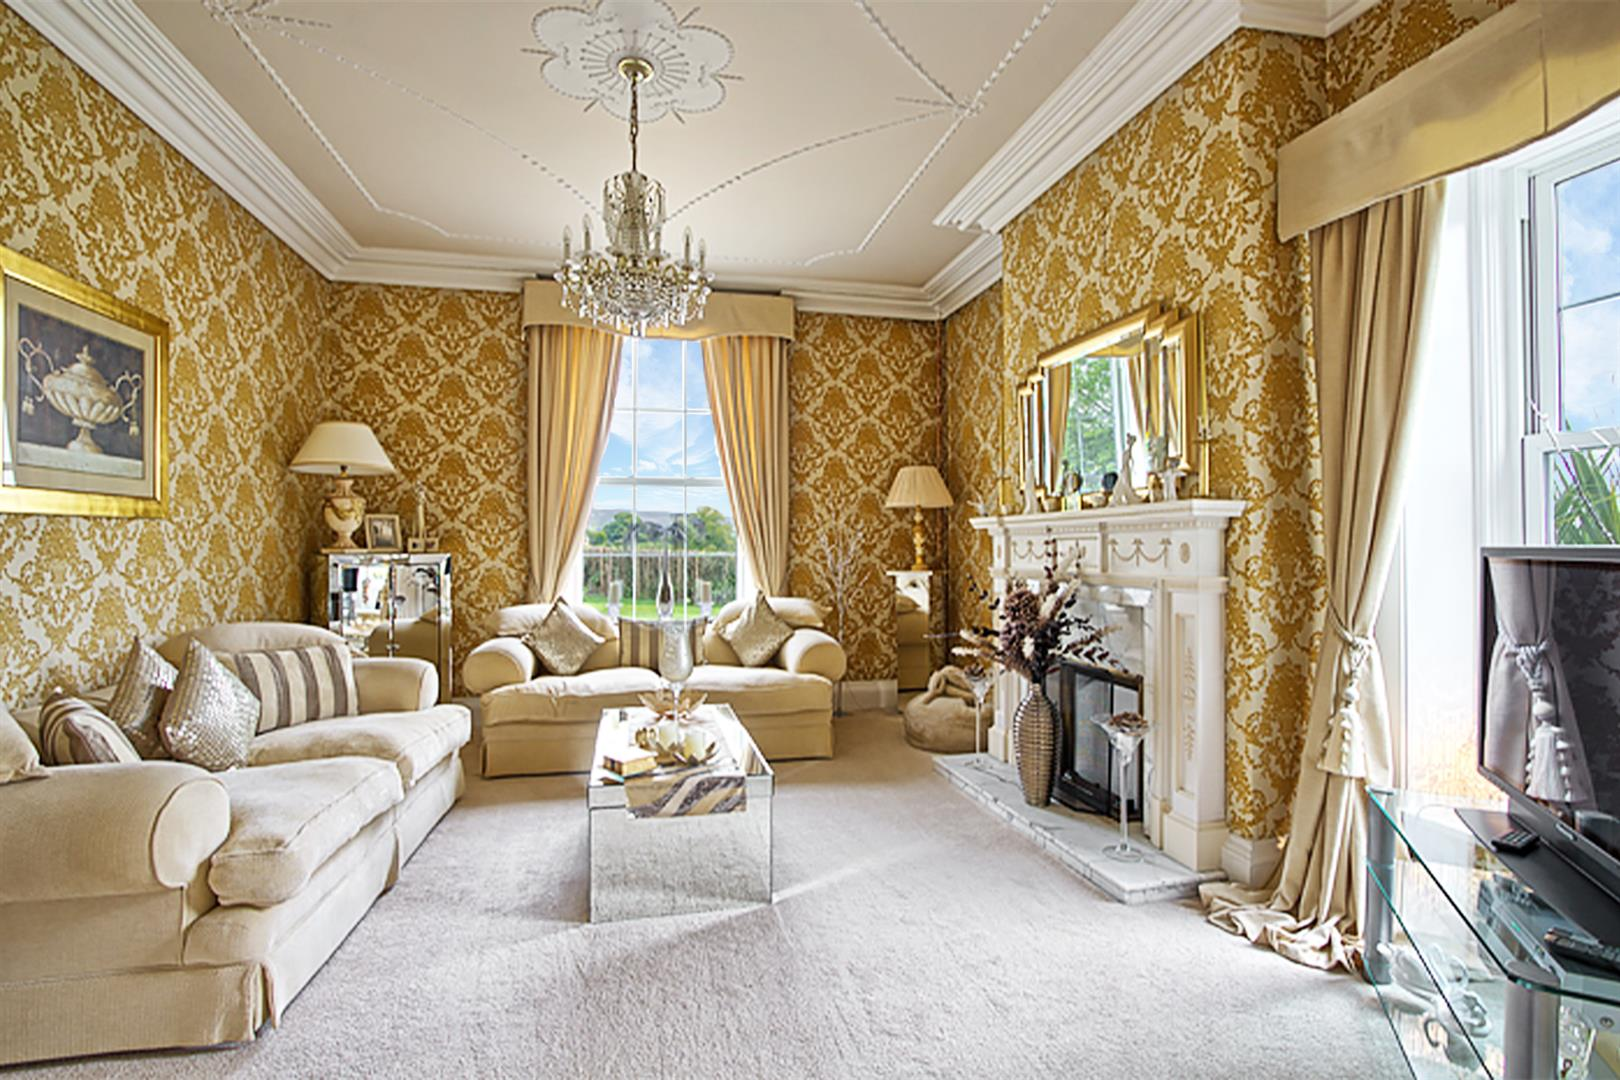 4 bedroom house For Sale in Bolton - lounge.png.